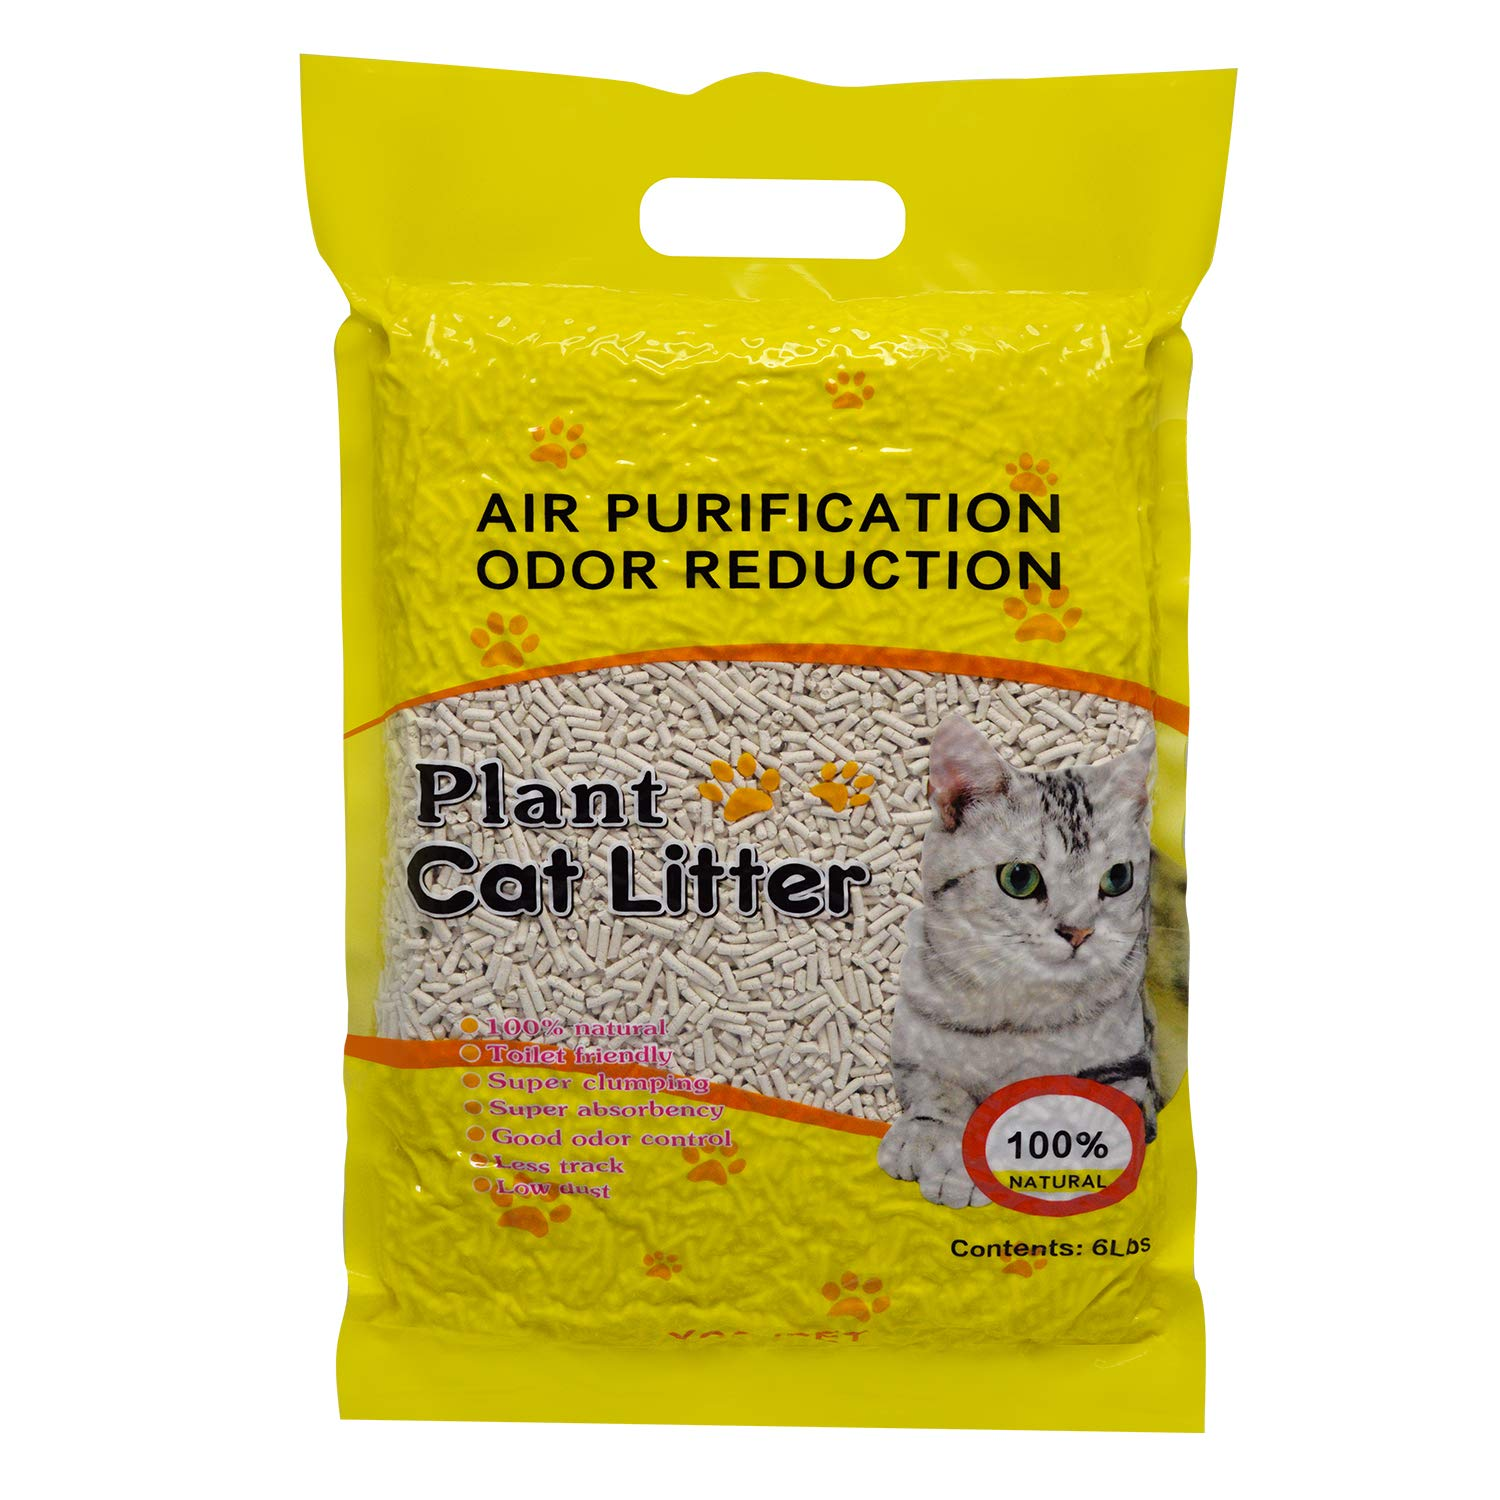 YCSJPET Fast-Clumping Multi-Cat Litter Flushable Litter Unscented and No Dust Pellets